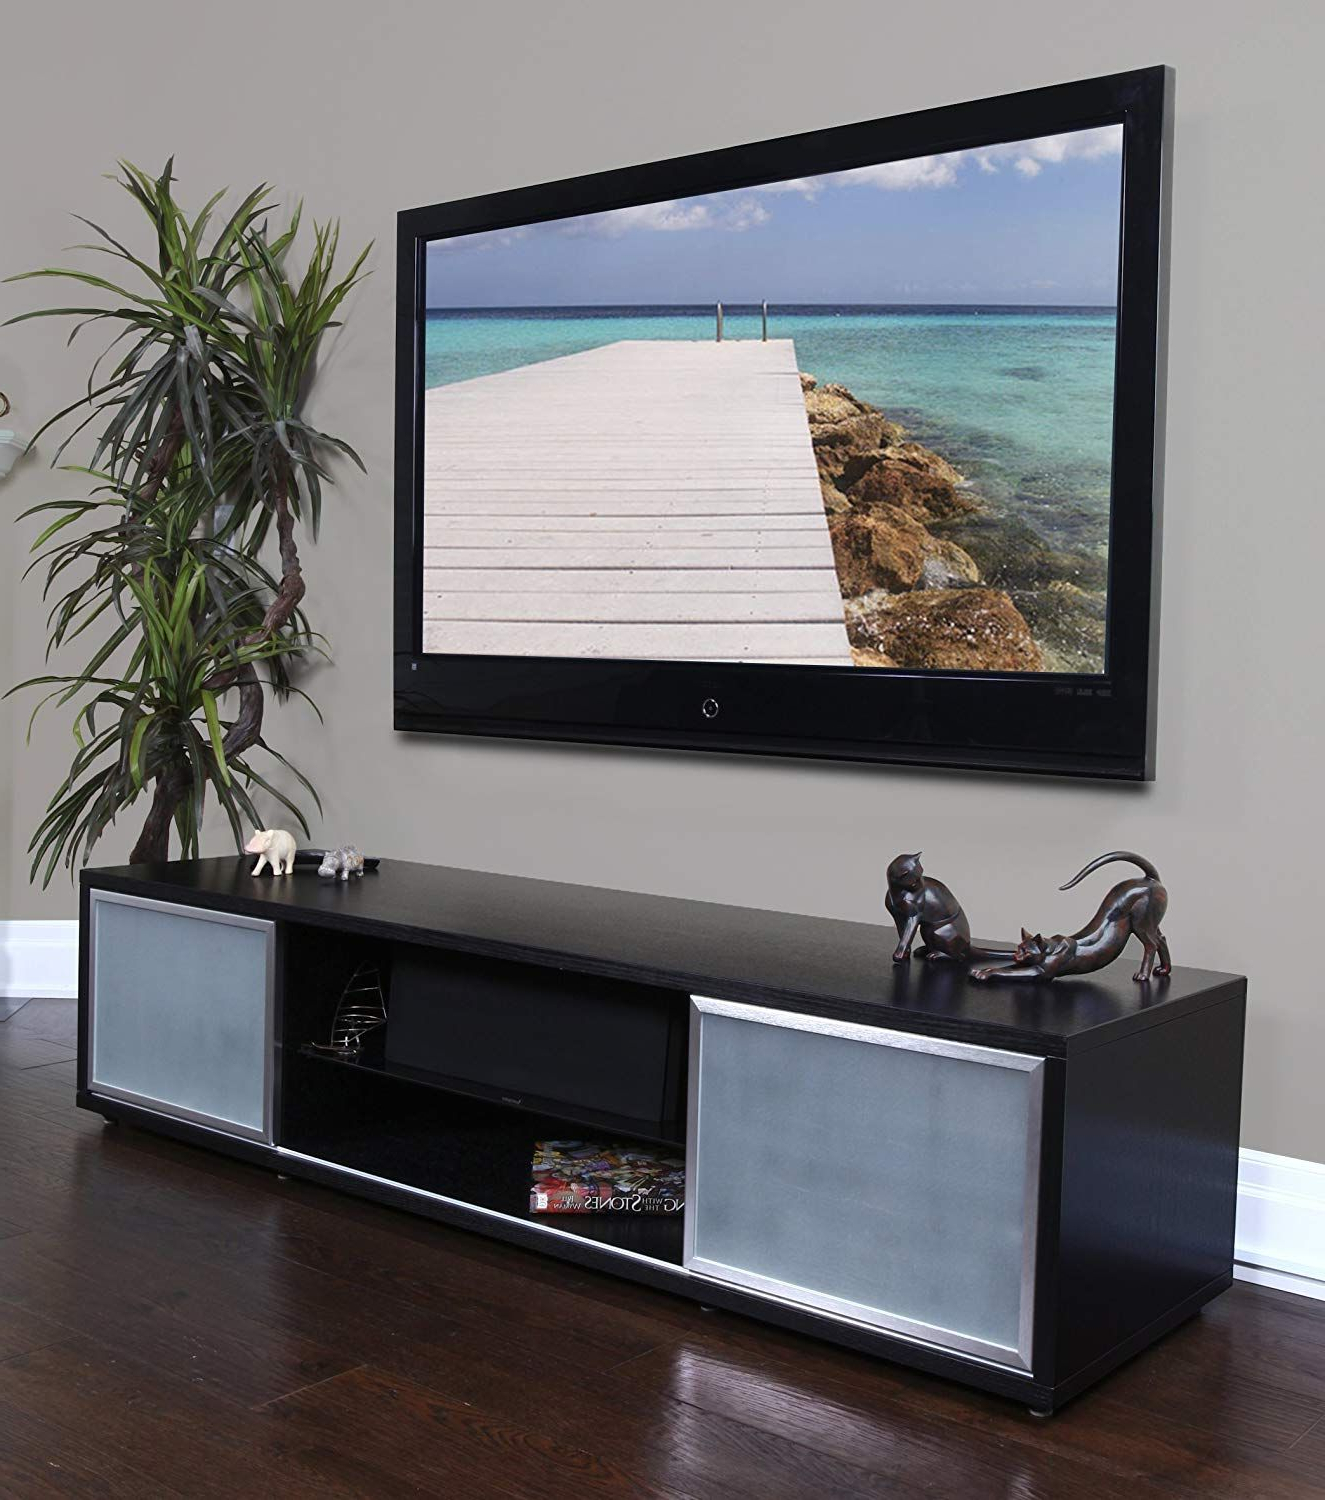 Plateau Sr V 75 Bb S Wood 75 Tv Stand, Black Oak Finish, Silver Inside Valencia 70 Inch Tv Stands (View 8 of 20)